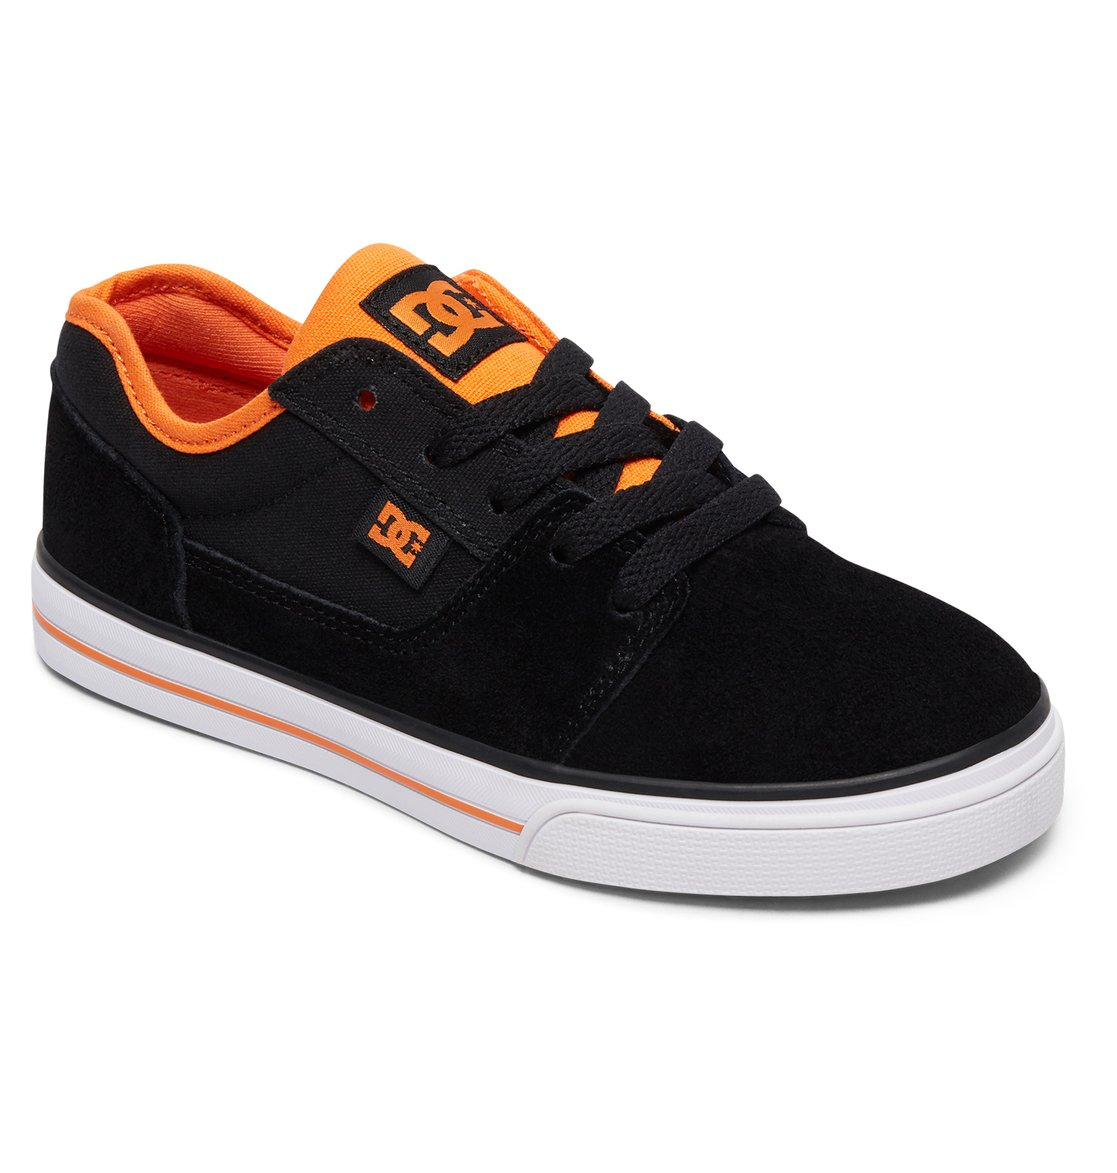 DC SHOES TONIK BOYS mCGFOWeci